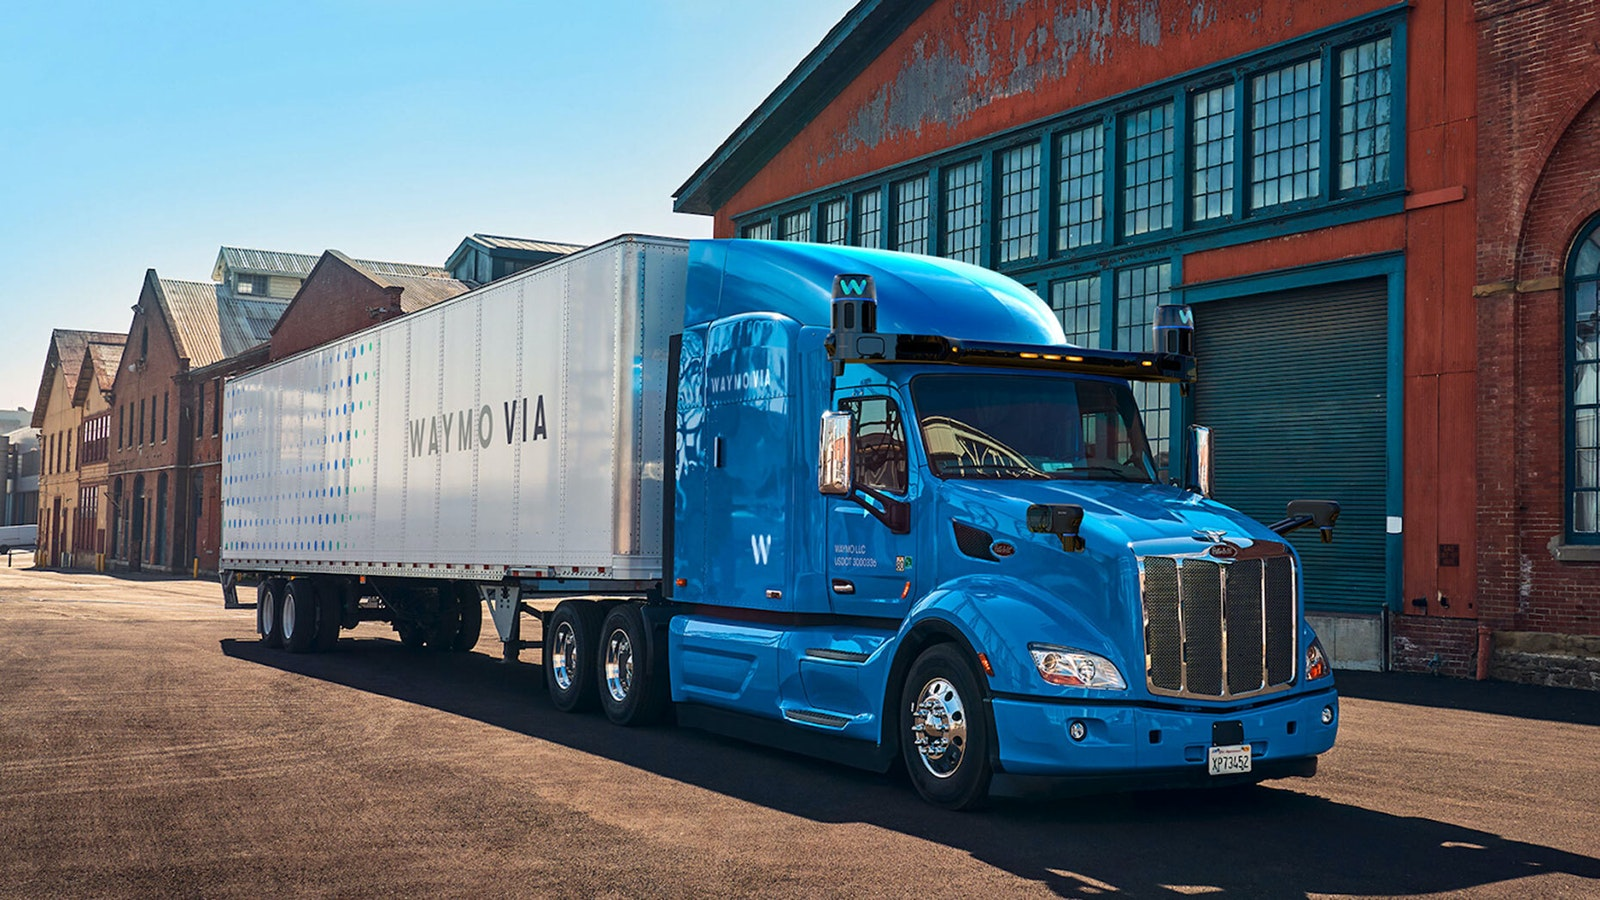 A recent image of a Waymo Via, a self-driving truck protoype. Photo by Waymo